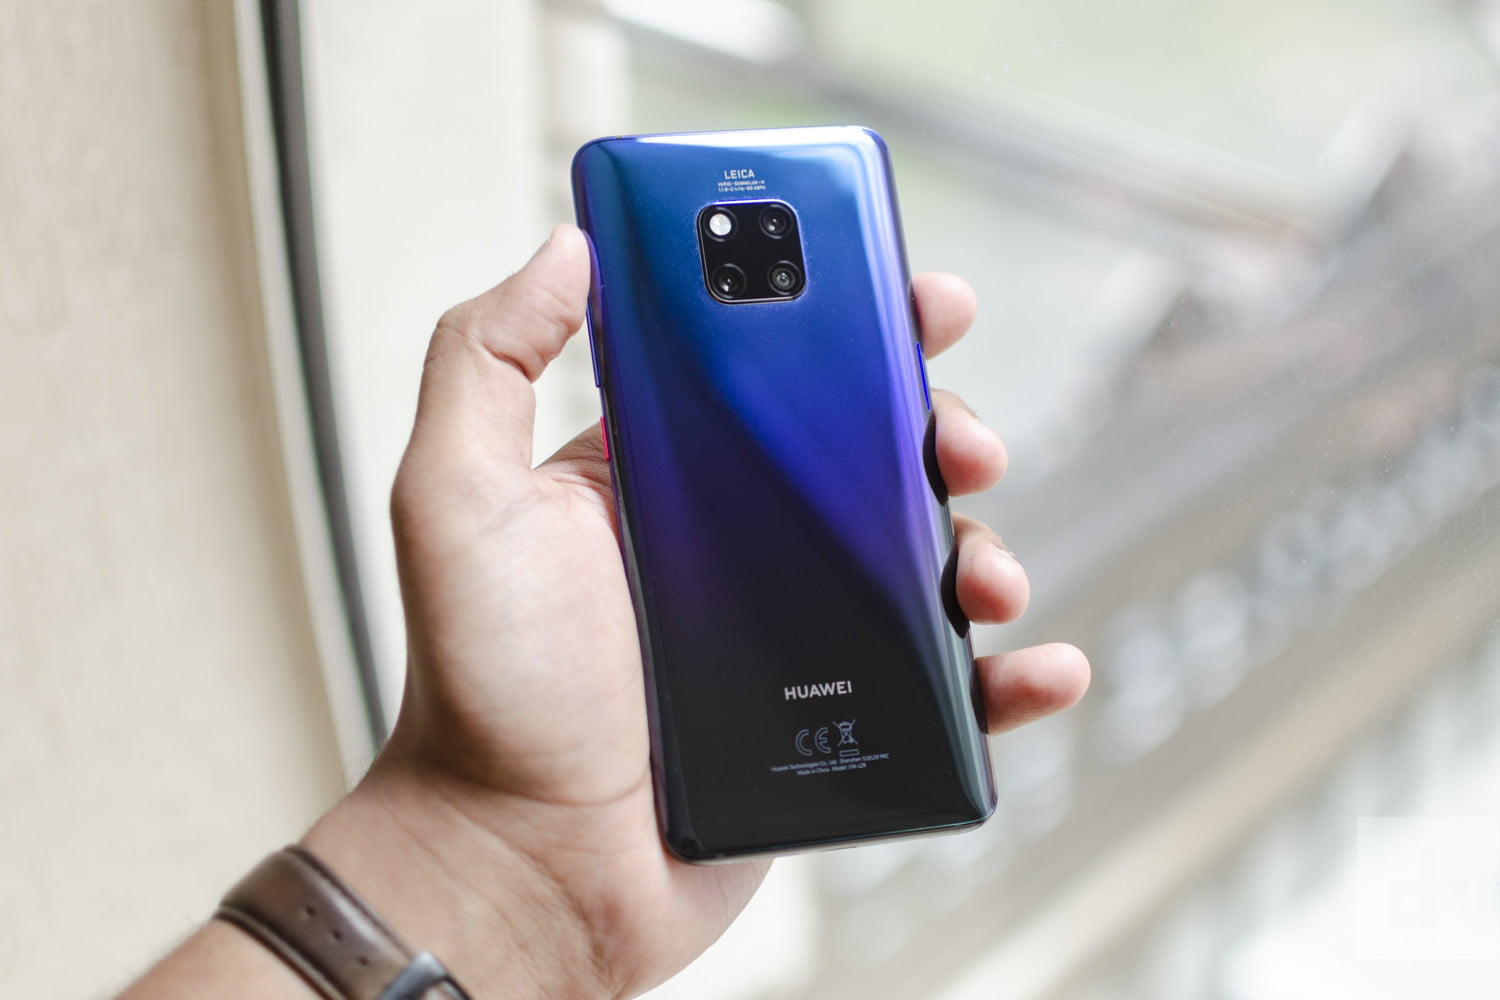 Csgo Best Case To Open 2020 The Best Huawei Mate 20 Pro Cases | Digital Trends